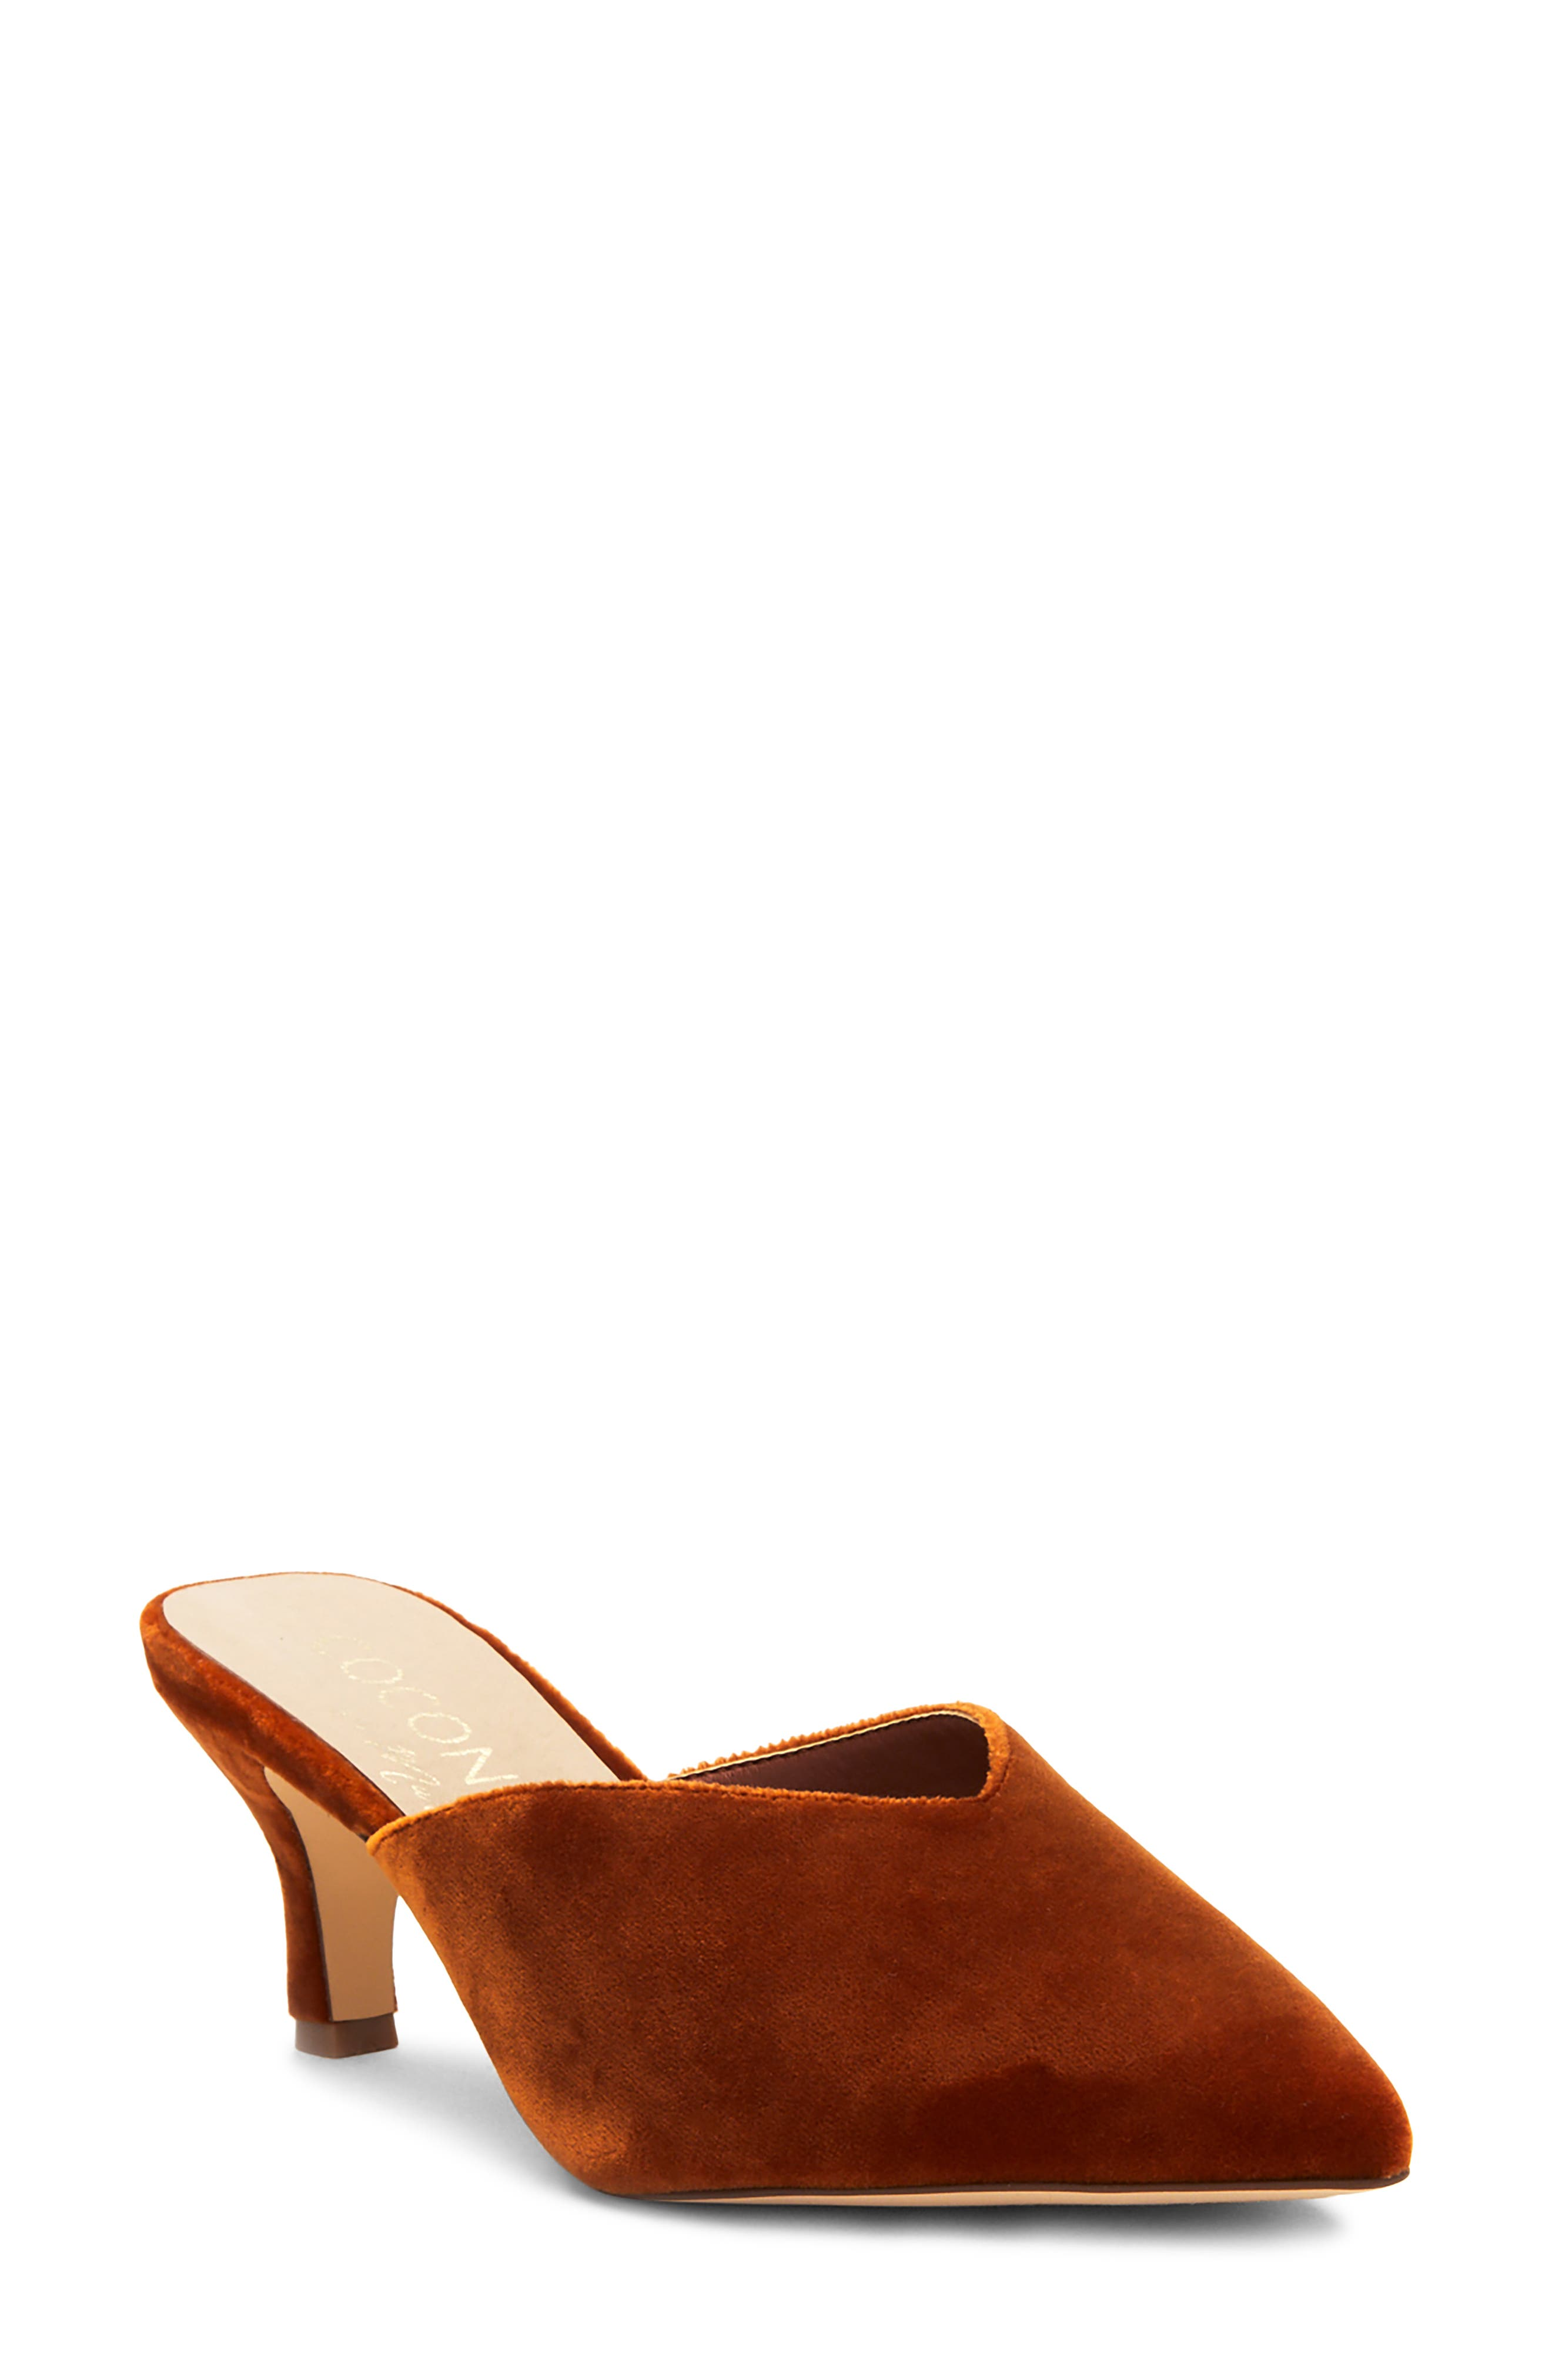 A slender, pointy toe and V-shaped topline style an always-chic mule lofted by a tapered kitten heel. Style Name: Coconuts By Matisse Ojai Pointed Toe Mule (Women). Style Number: 6098806. Available in stores.